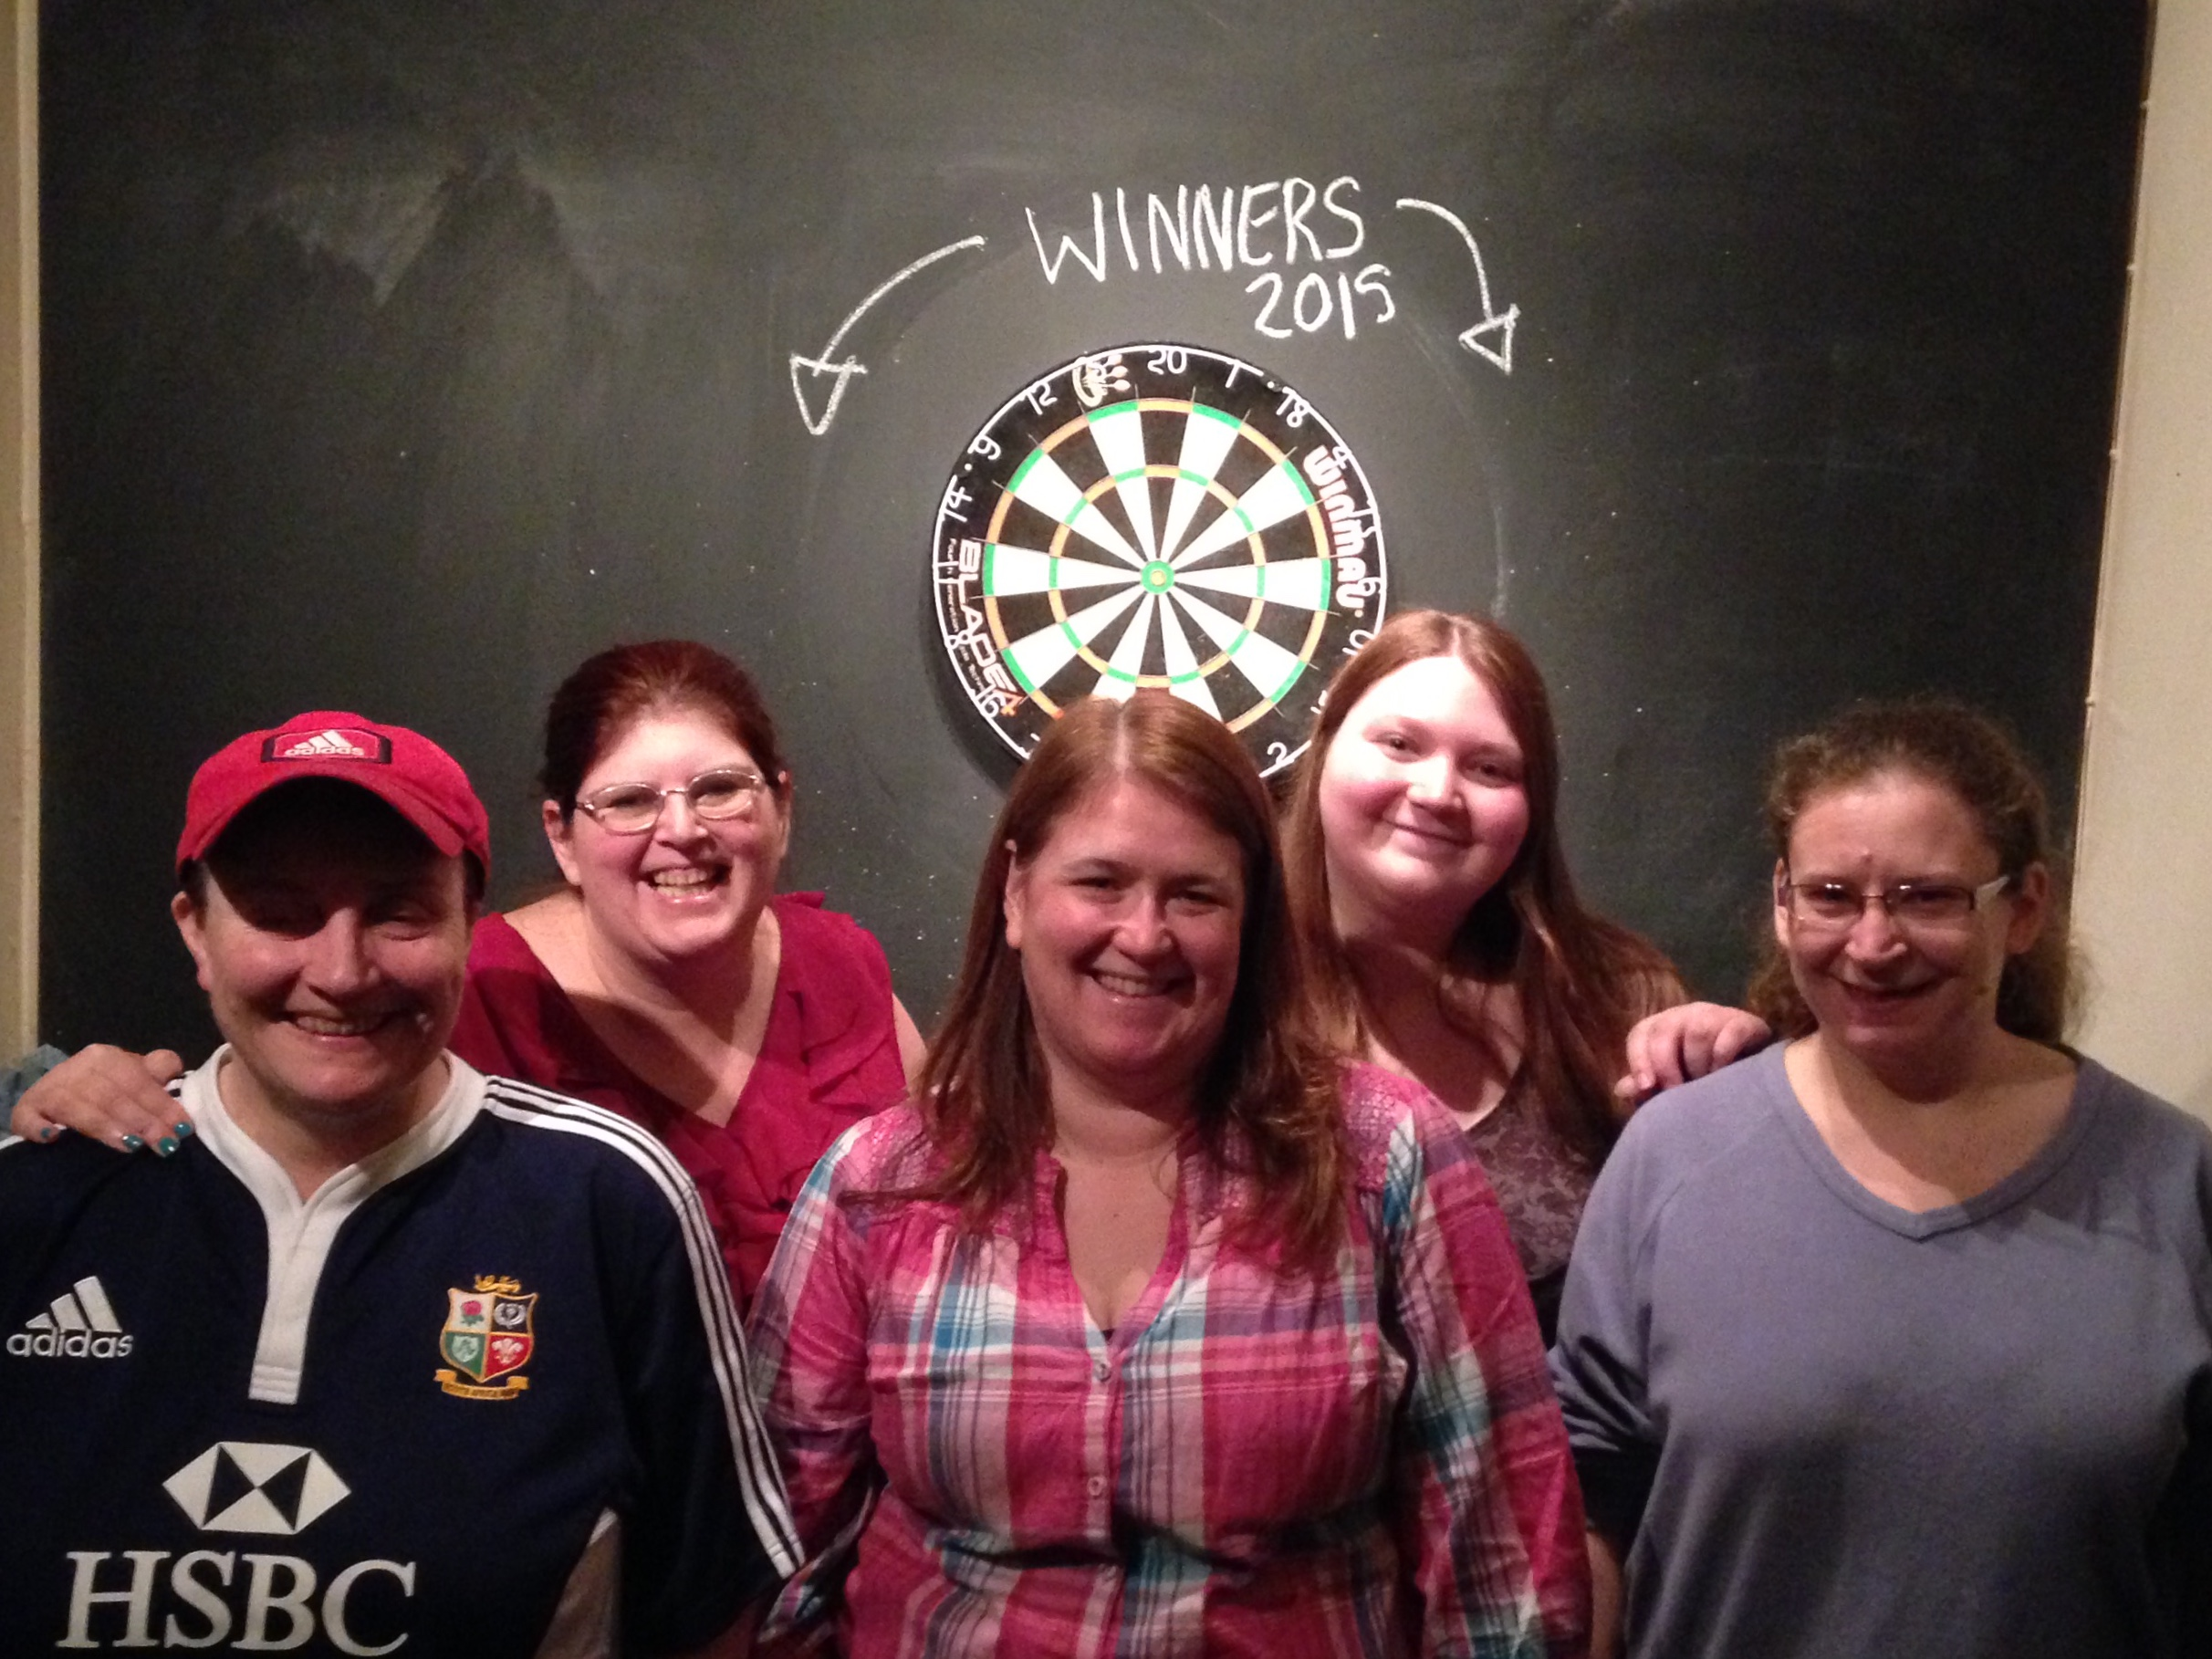 Darts League Winners 2015 - team